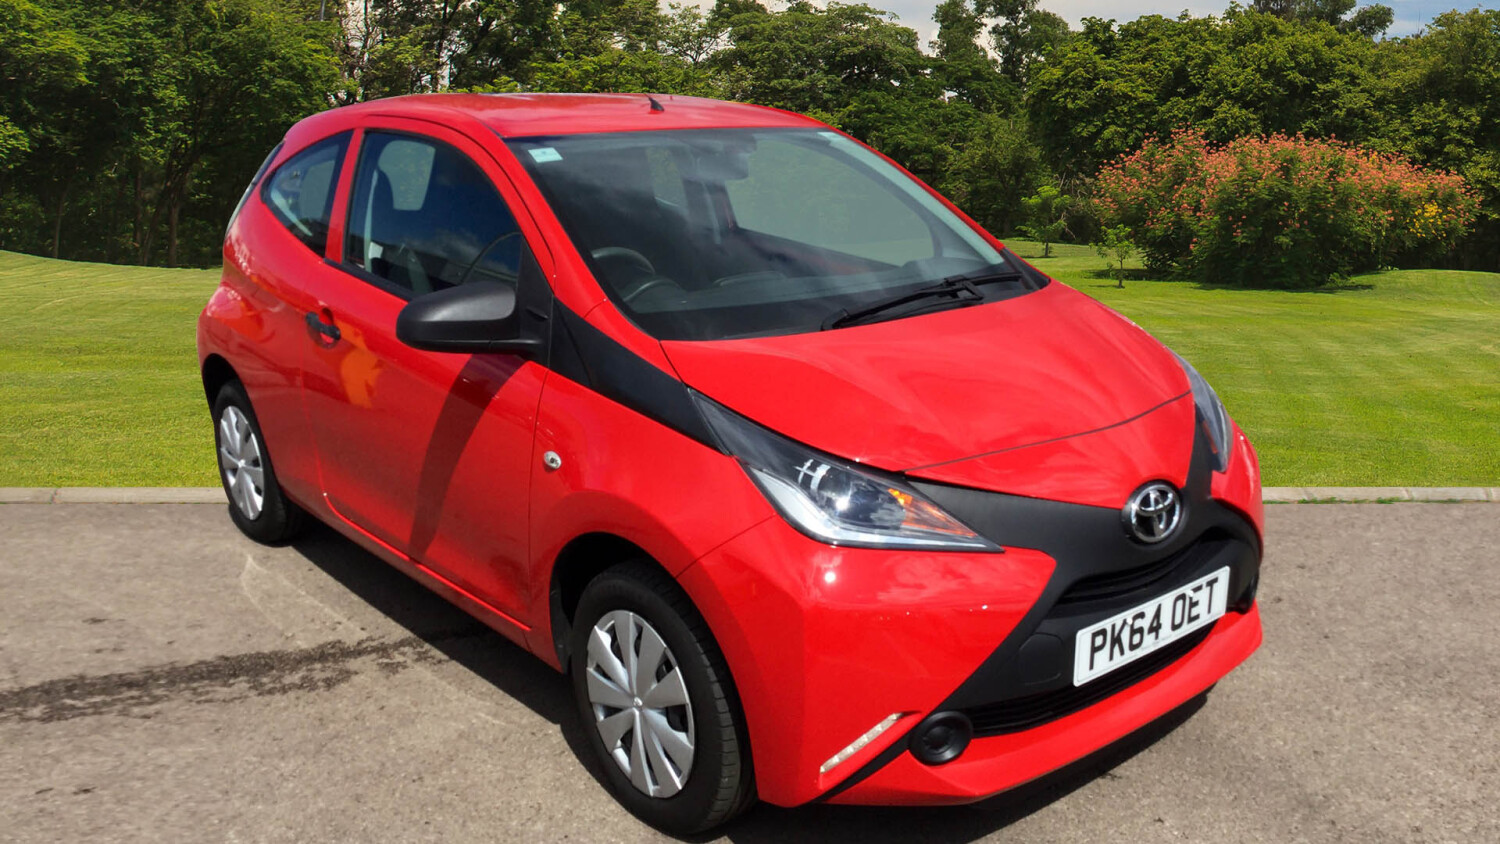 buy online toyota aygo 1 0 vvt i x 3dr petrol hatchback. Black Bedroom Furniture Sets. Home Design Ideas